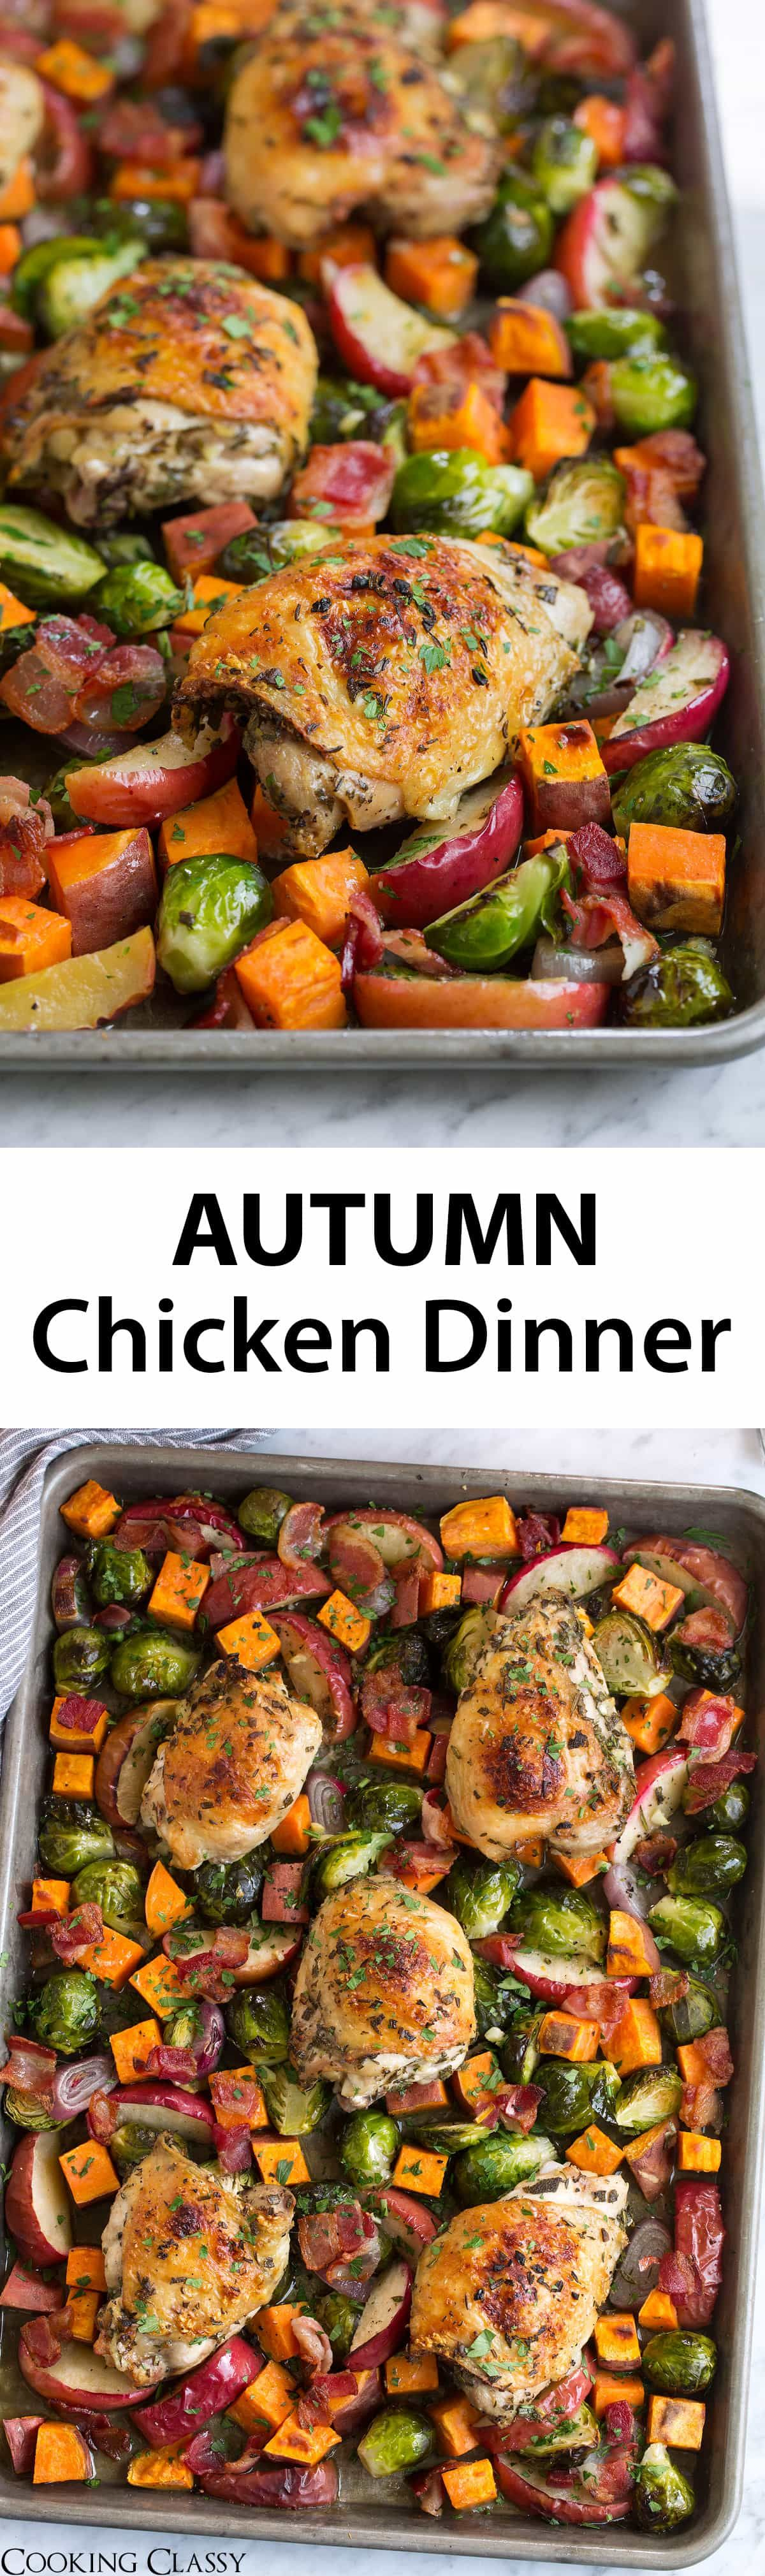 One Pan Autumn Chicken Dinner - one of my favorite fall recipes!! Comforting good for the soul food and great way to use up seasonal produce. #fallrecipe #chicken #recipe #dinner #cookingclassy #fallrecipesdinner